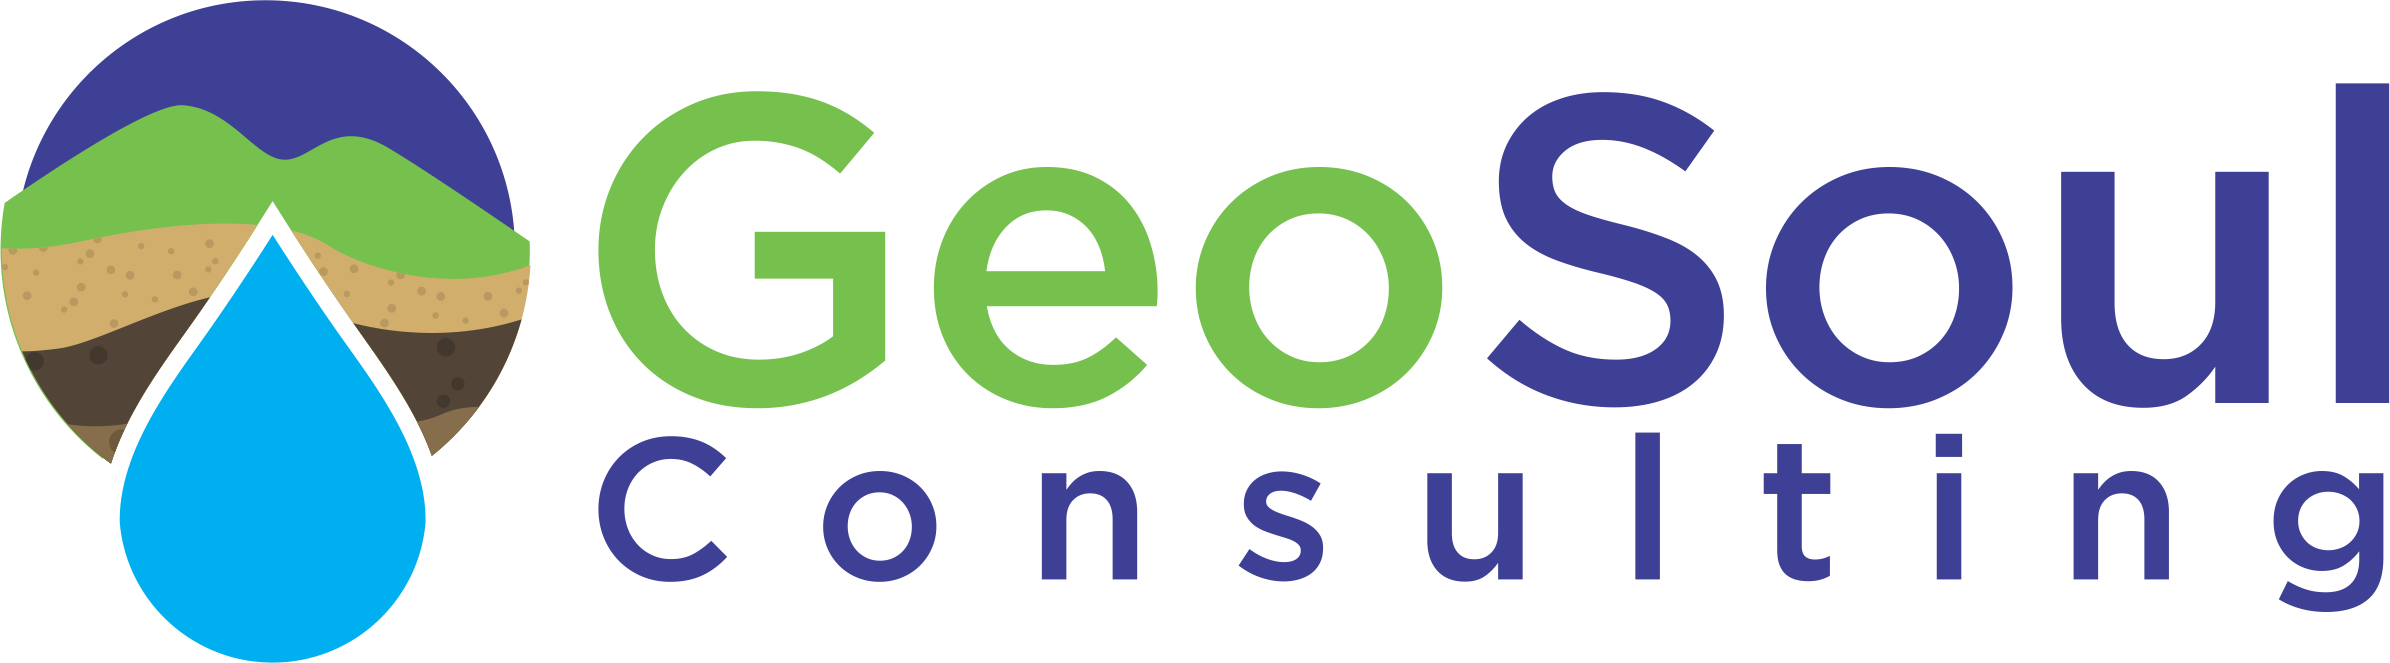 GeoSoul Consulting C.A.